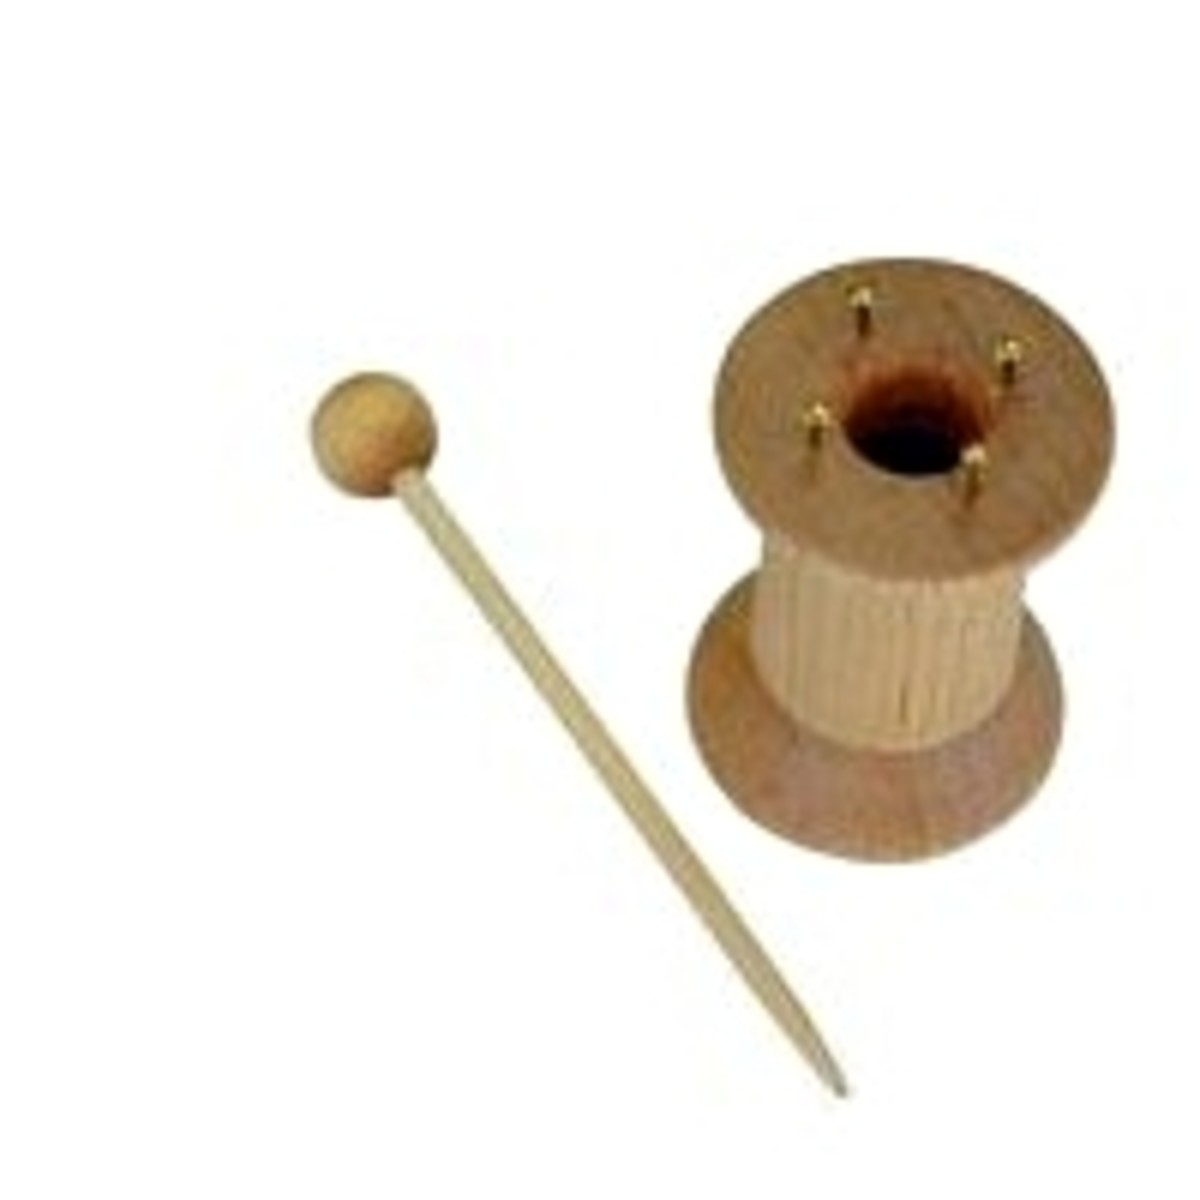 "A ""classic"" knitting spool made from a wooden thread spool."